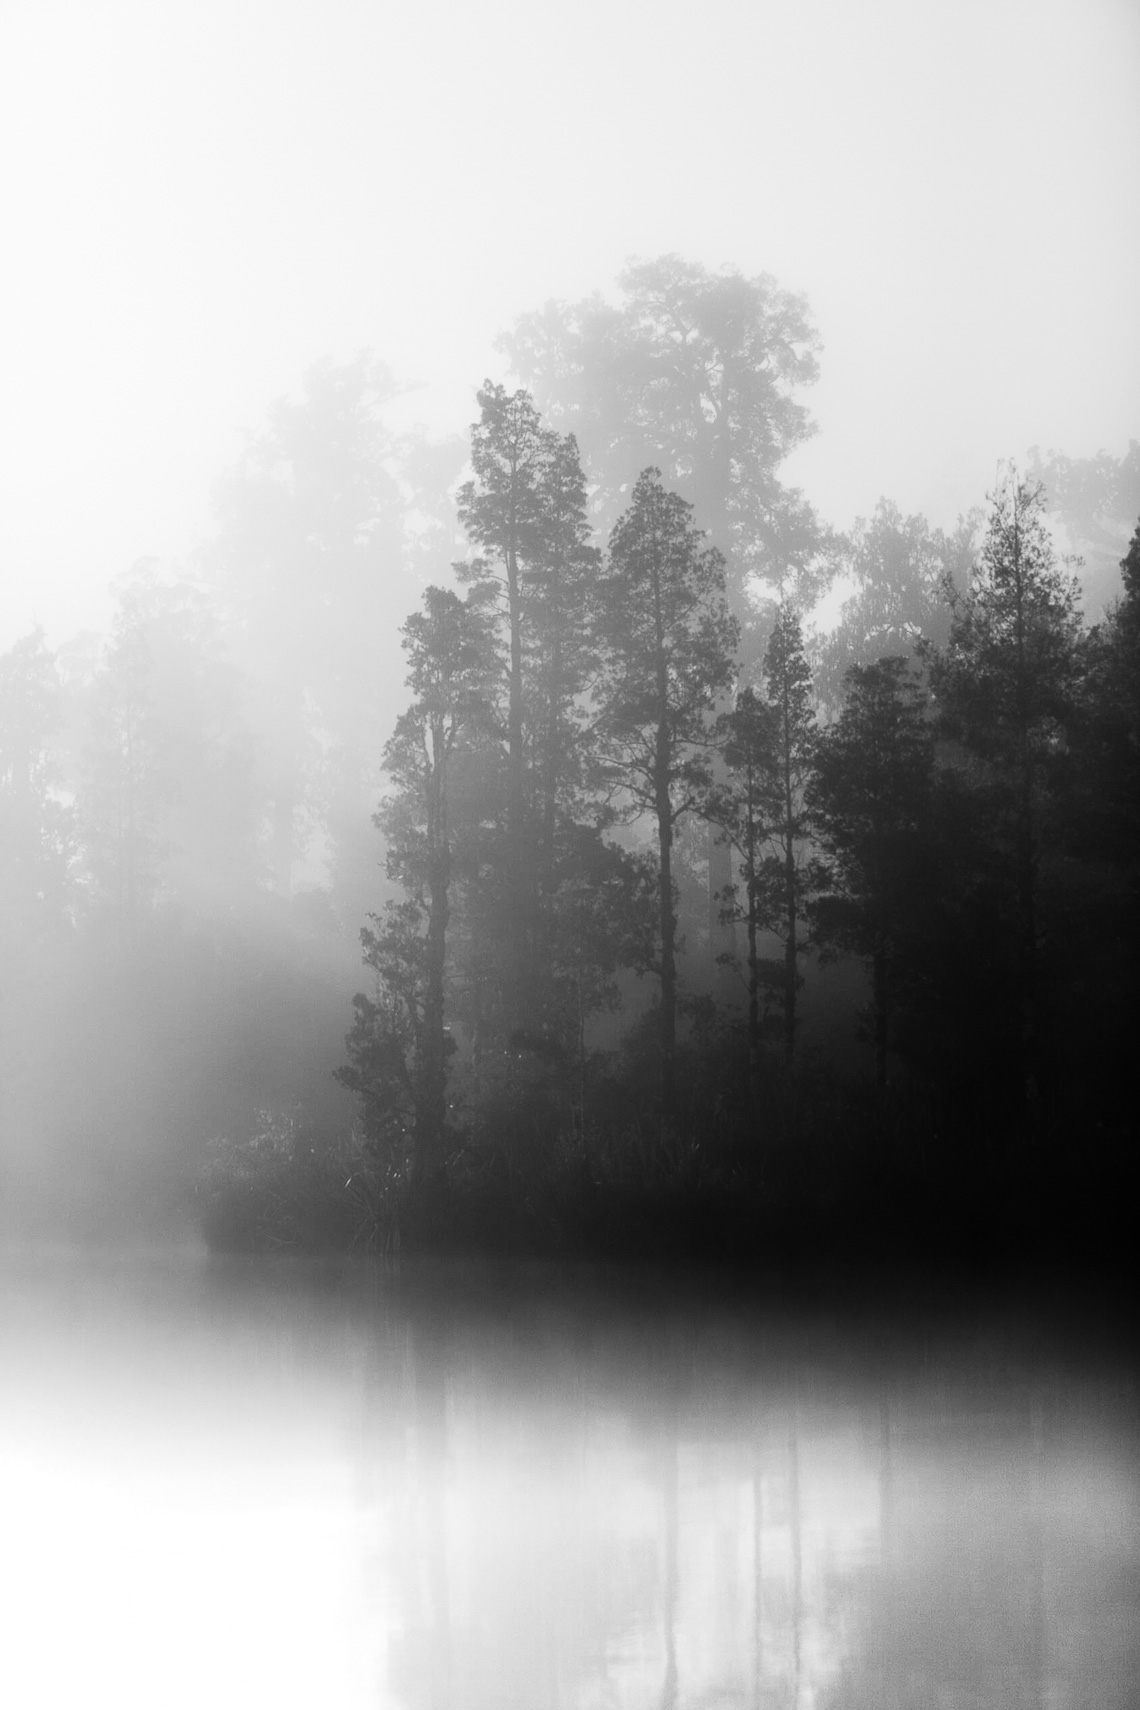 Mist on the waters of Lake Mapourika by Paul Green Photographer